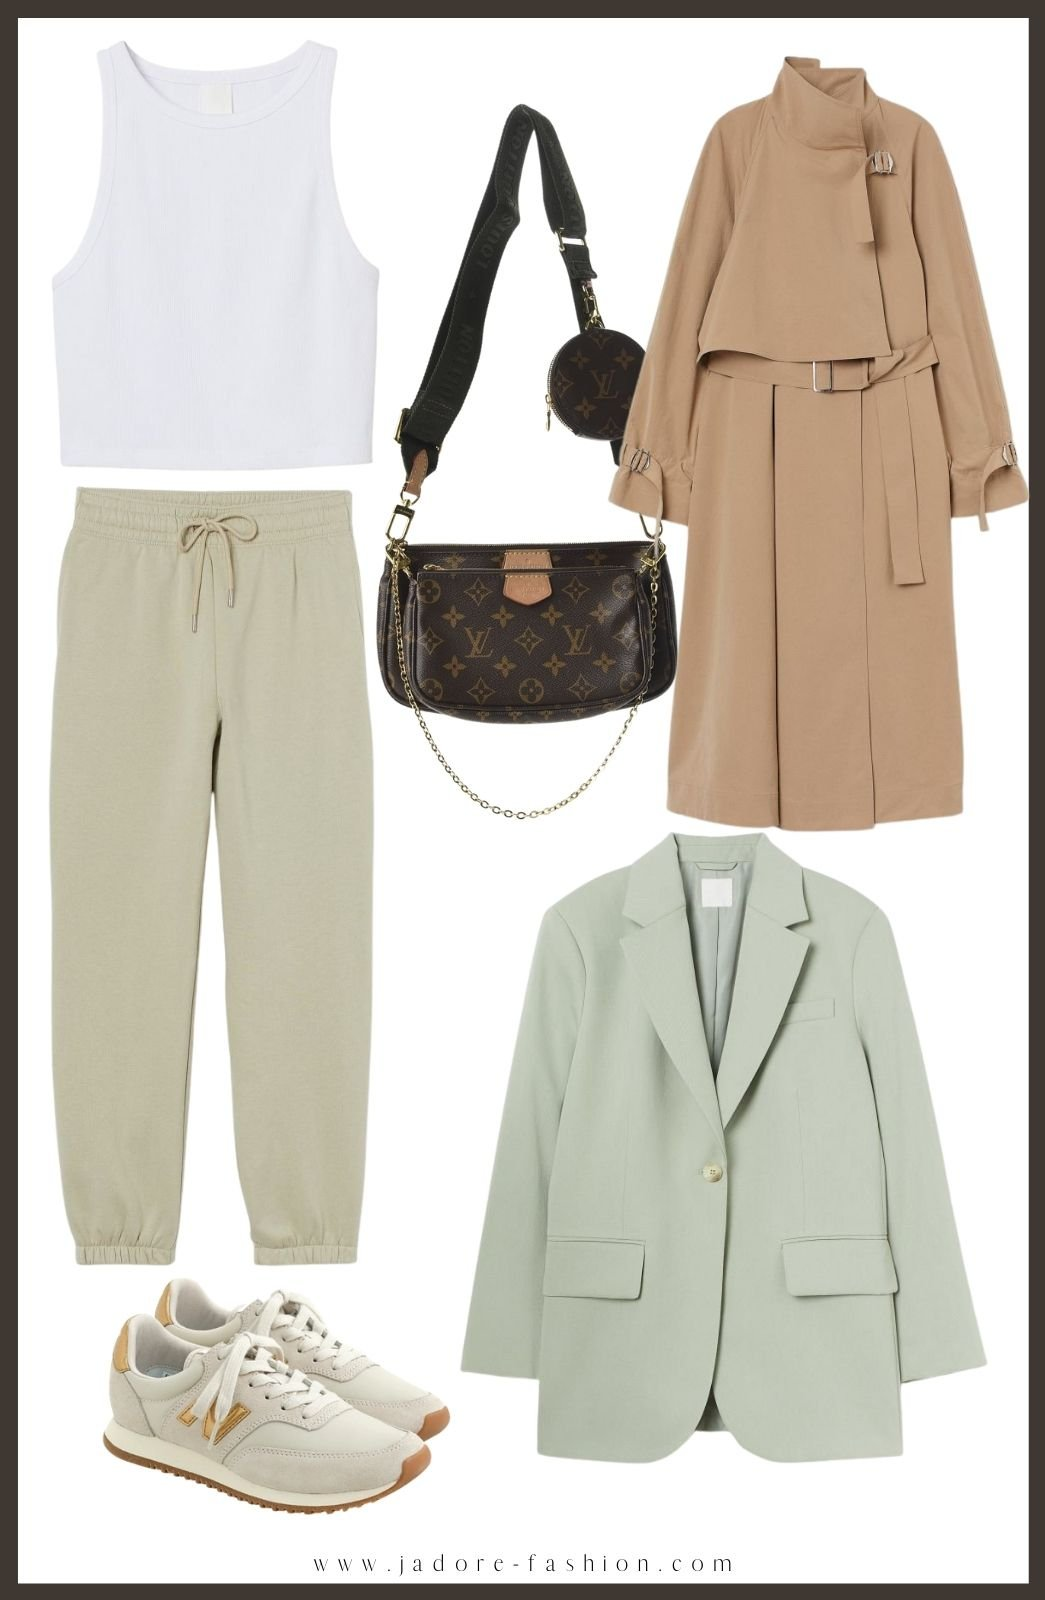 Stella-adewunmi-of-jadore-fashion-blog-share-what-to-wear-this-week-sweatpants-style